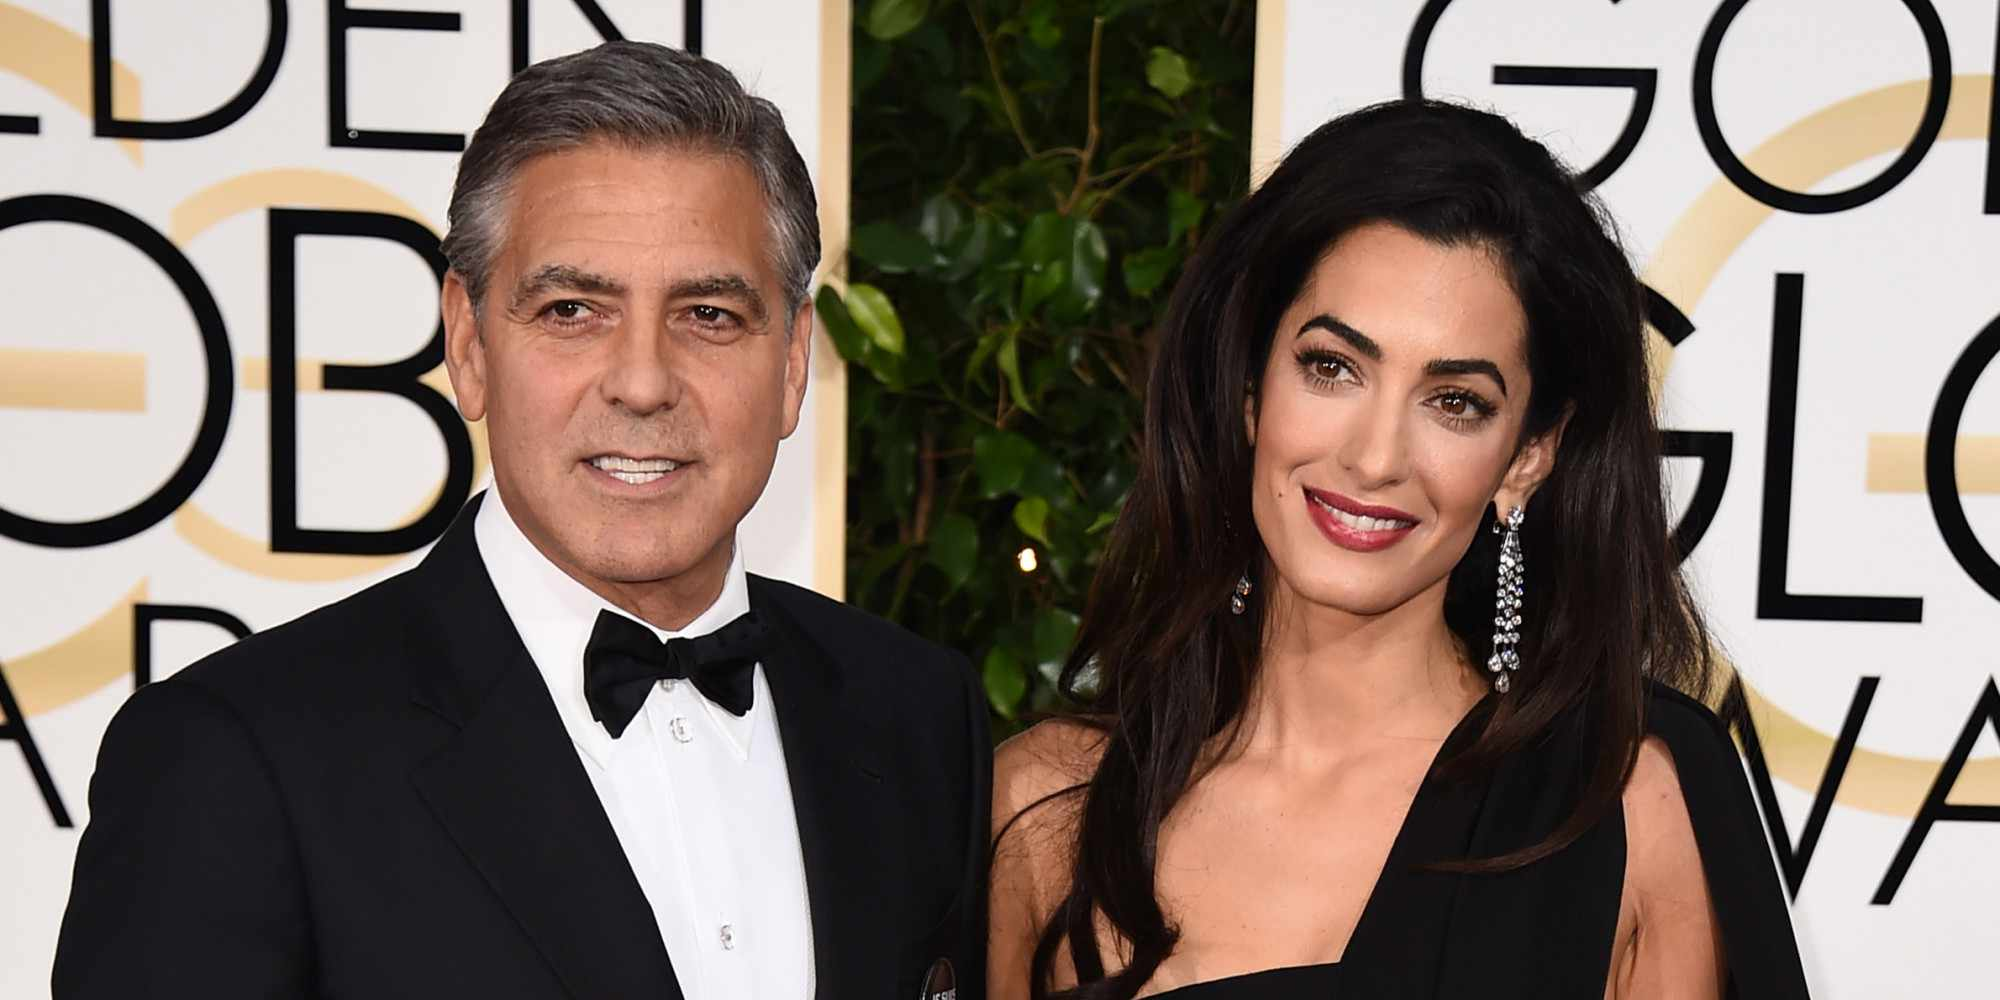 George & Amal Clooney Spend Easter In Ireland - Including